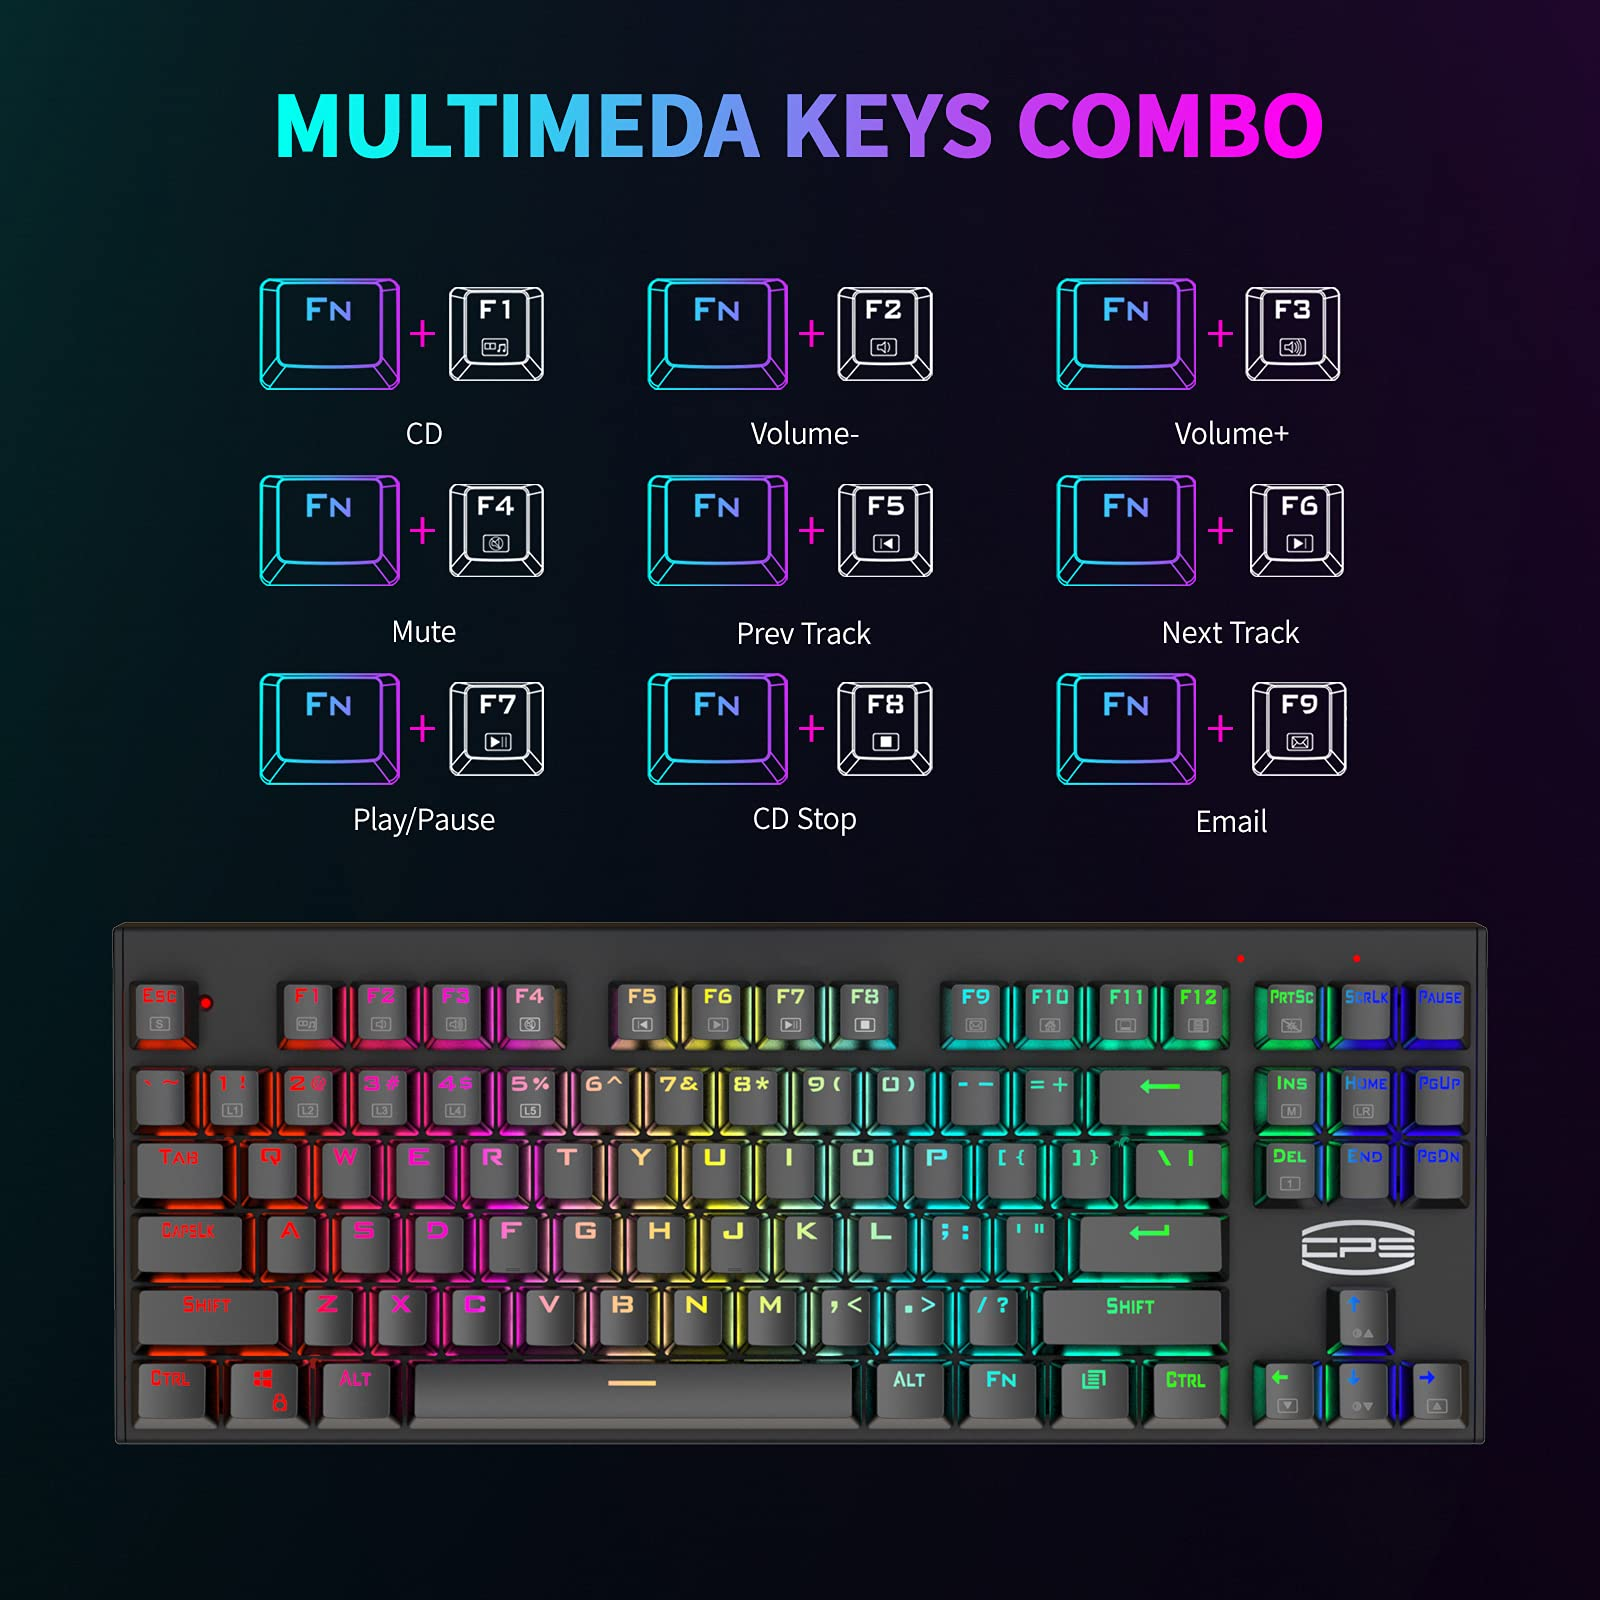 CP3 Gaming Keyboard RGB Wired Keyboard Anti-ghosting 87 Key Mechanical Keyboard with Blue Switches for Laptop, Windows, PC Games and Work